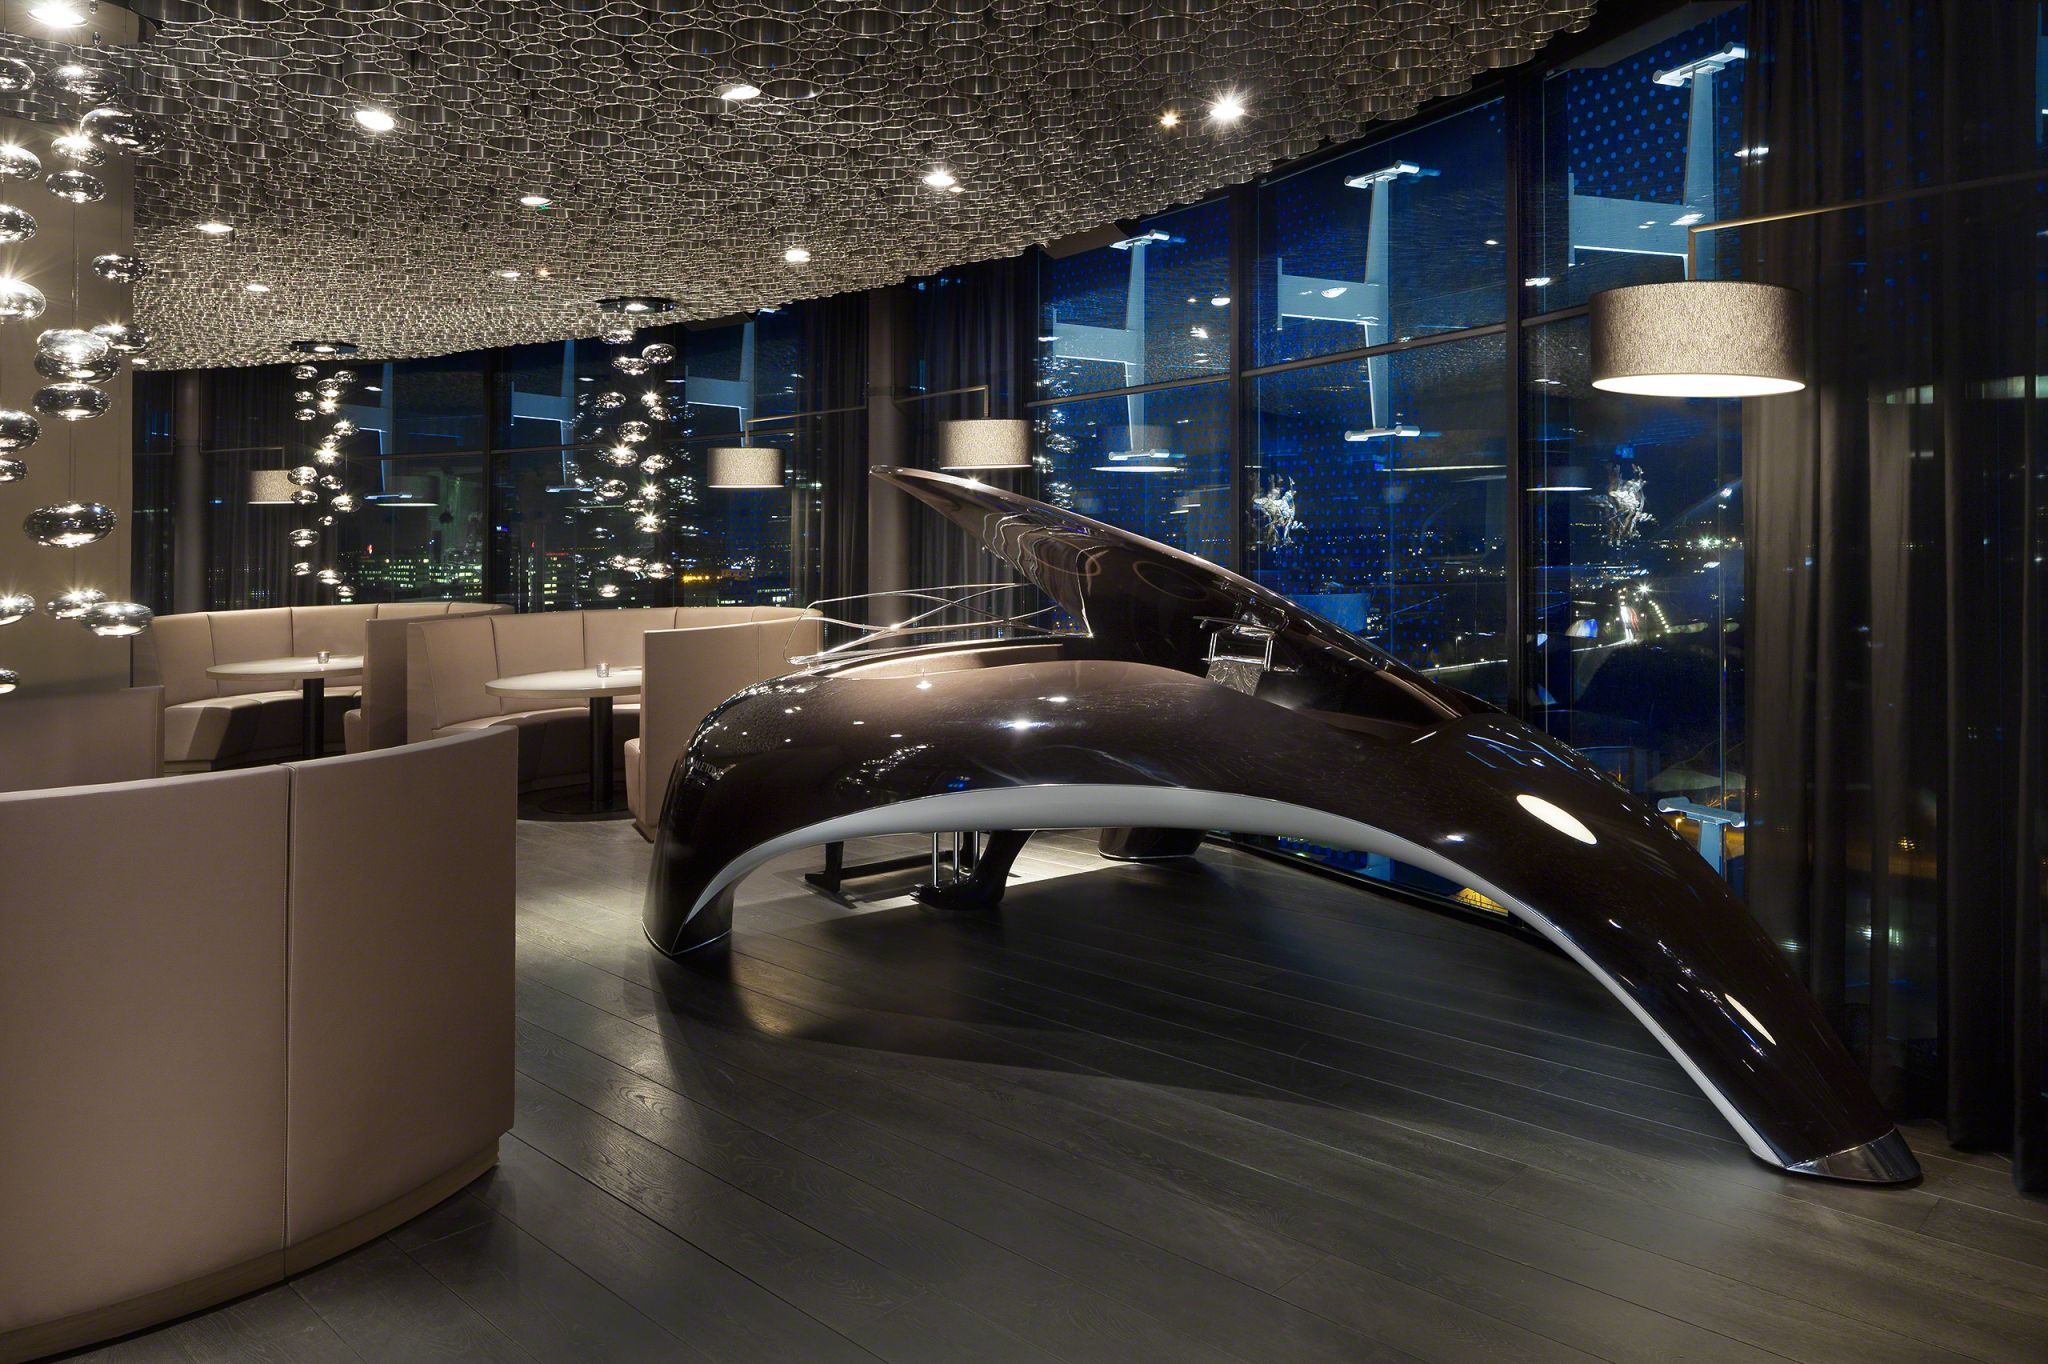 ky bar hospitality design with luxurious chandeliers and round sofas to create an intimate mood.